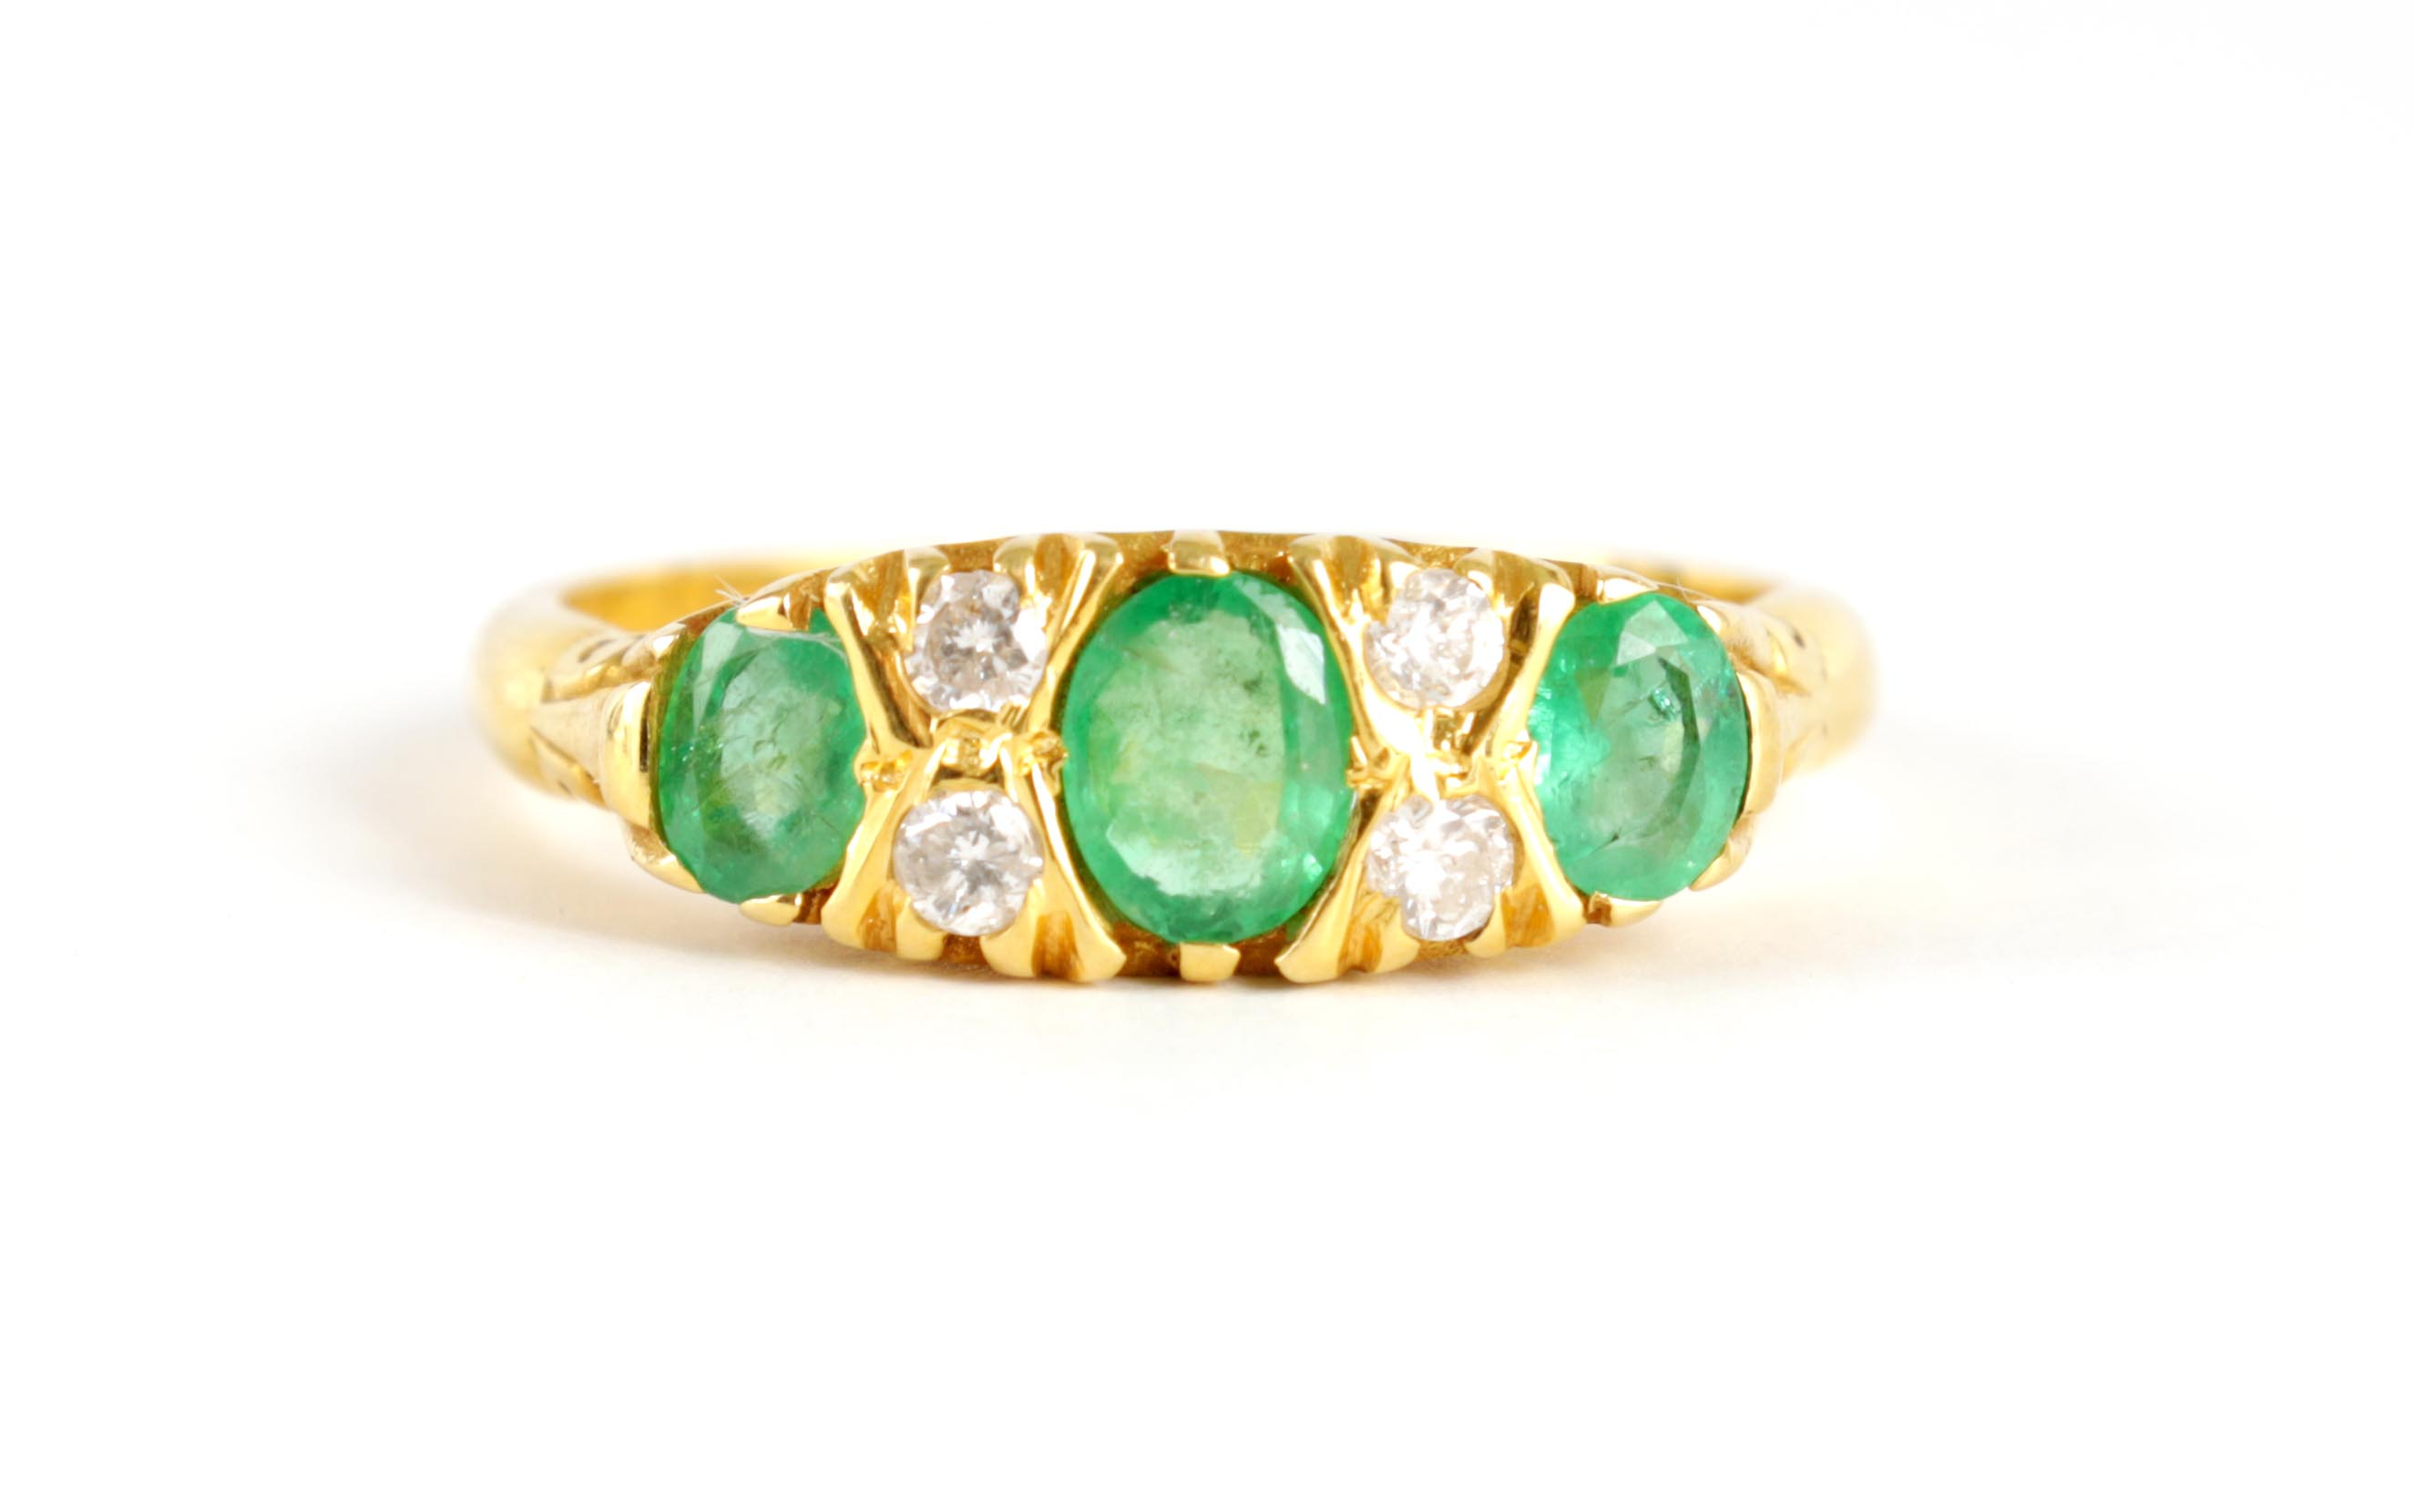 A LADIES 18CT GOLD DIAMOND AND EMERALD RING having four small diamonds set between three oval